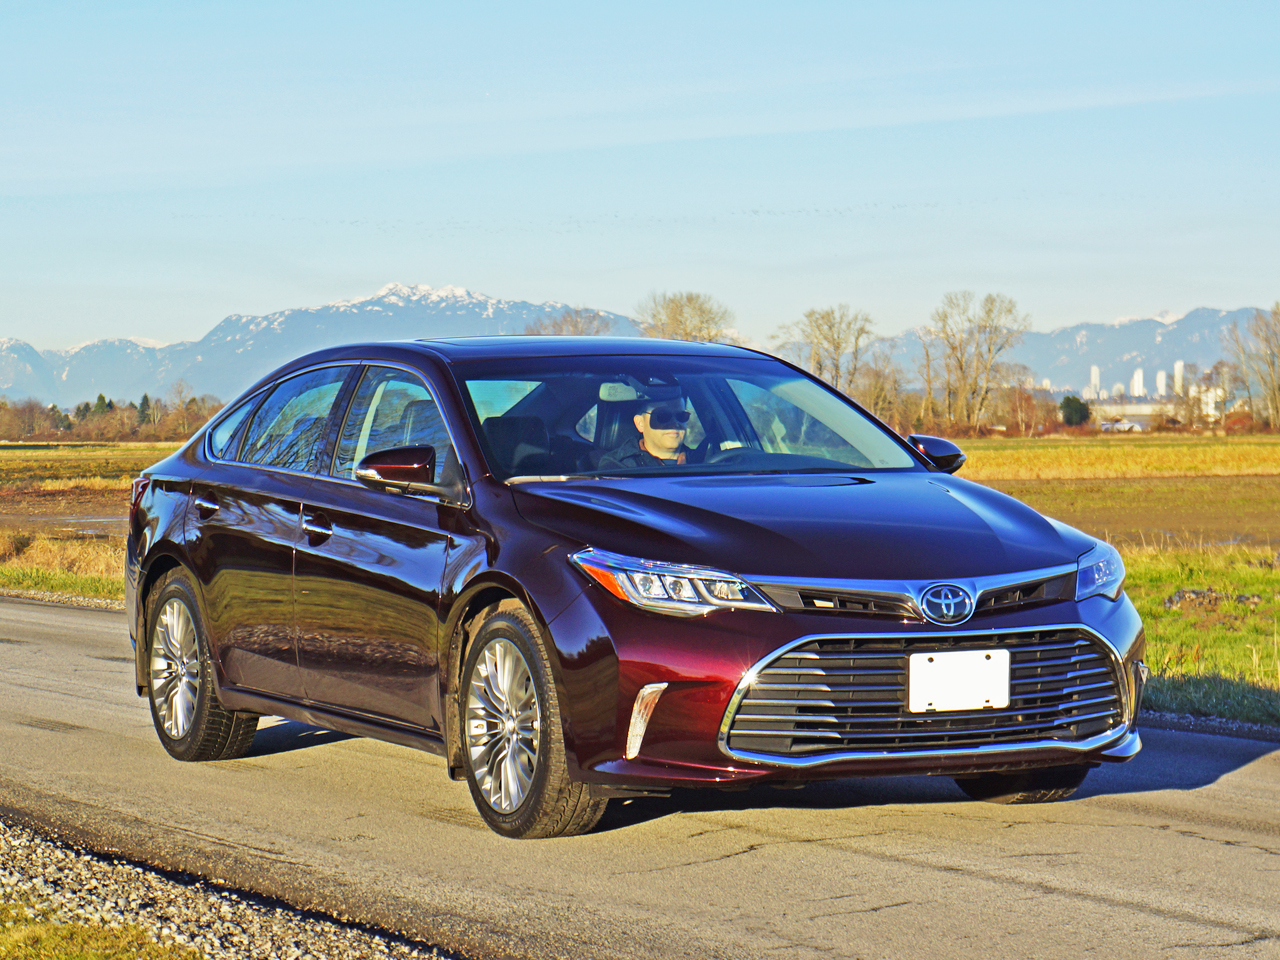 2016 toyota avalon limited road test review carcostcanada. Black Bedroom Furniture Sets. Home Design Ideas